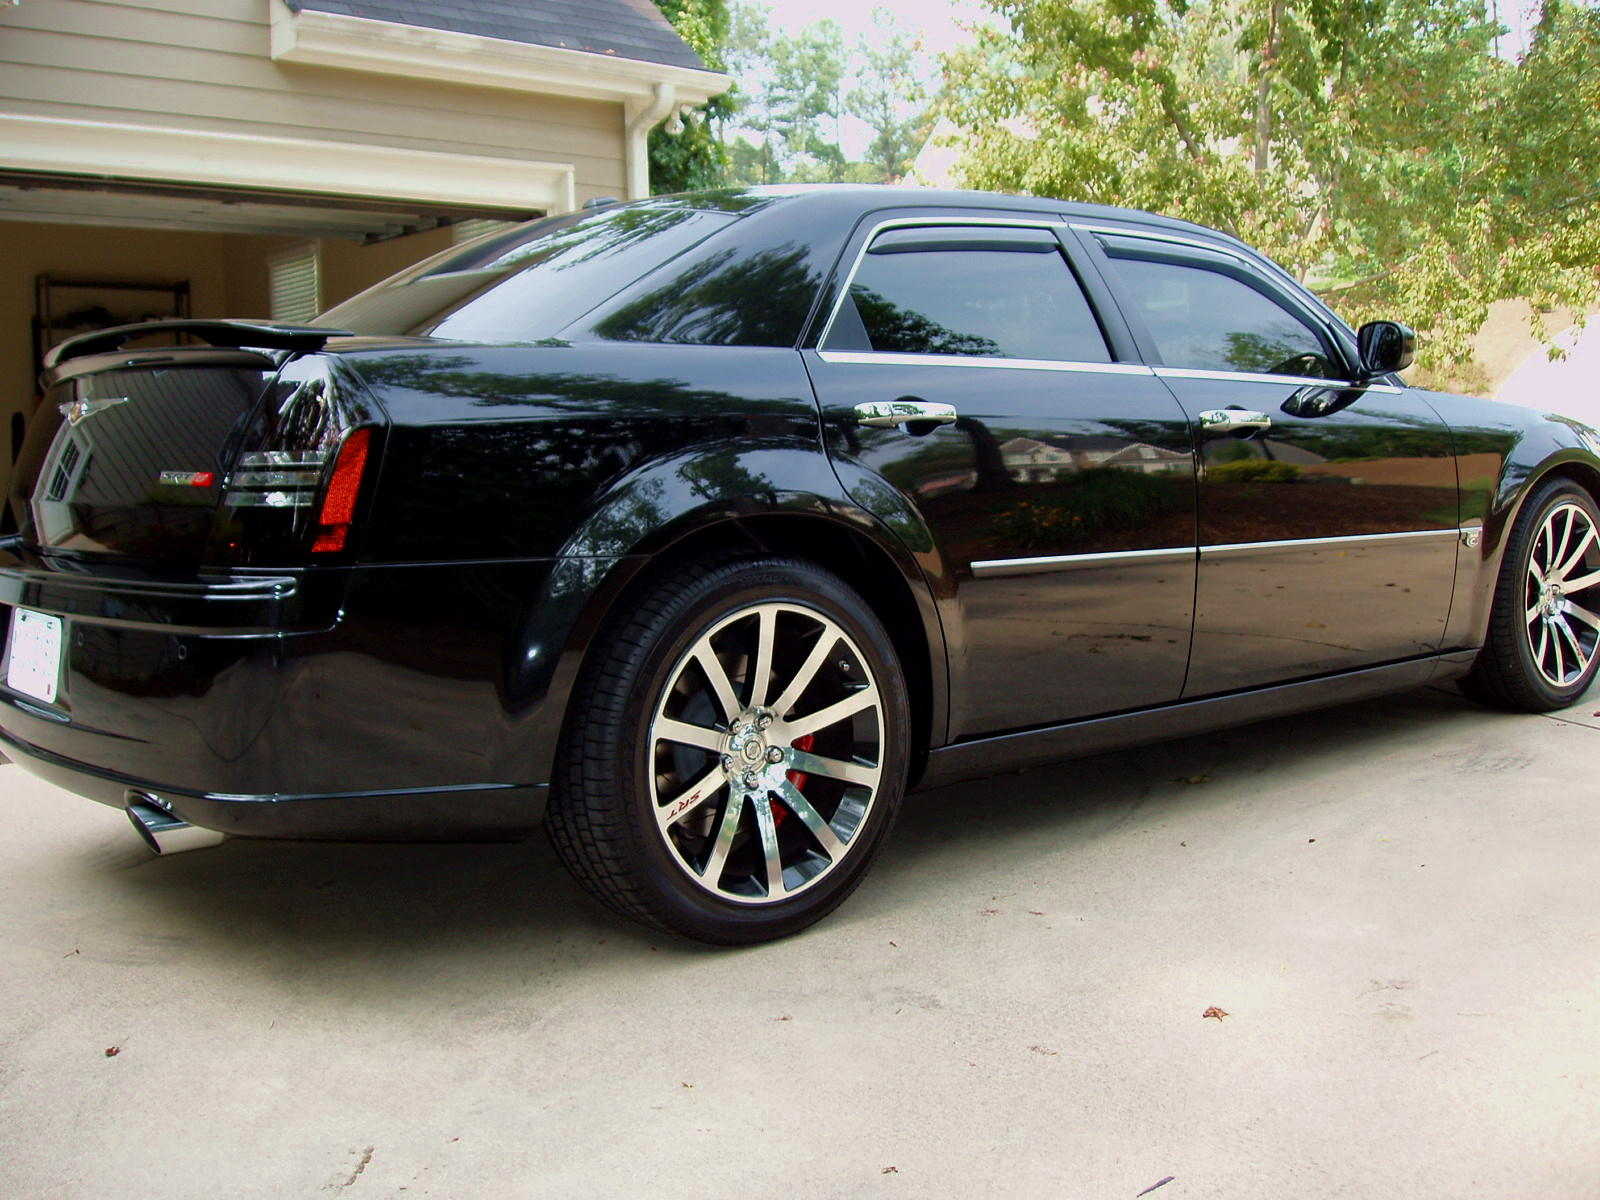 chrysler 300c srt8 quarter mile time with 2011 Chrysler 300 Srt8 Photos on Odev Kapak Modelleri in addition Srt8 Chrysler also Brandon 20roy additionally 424393964869589024 further Kylie Jenner Bikini Crotch.